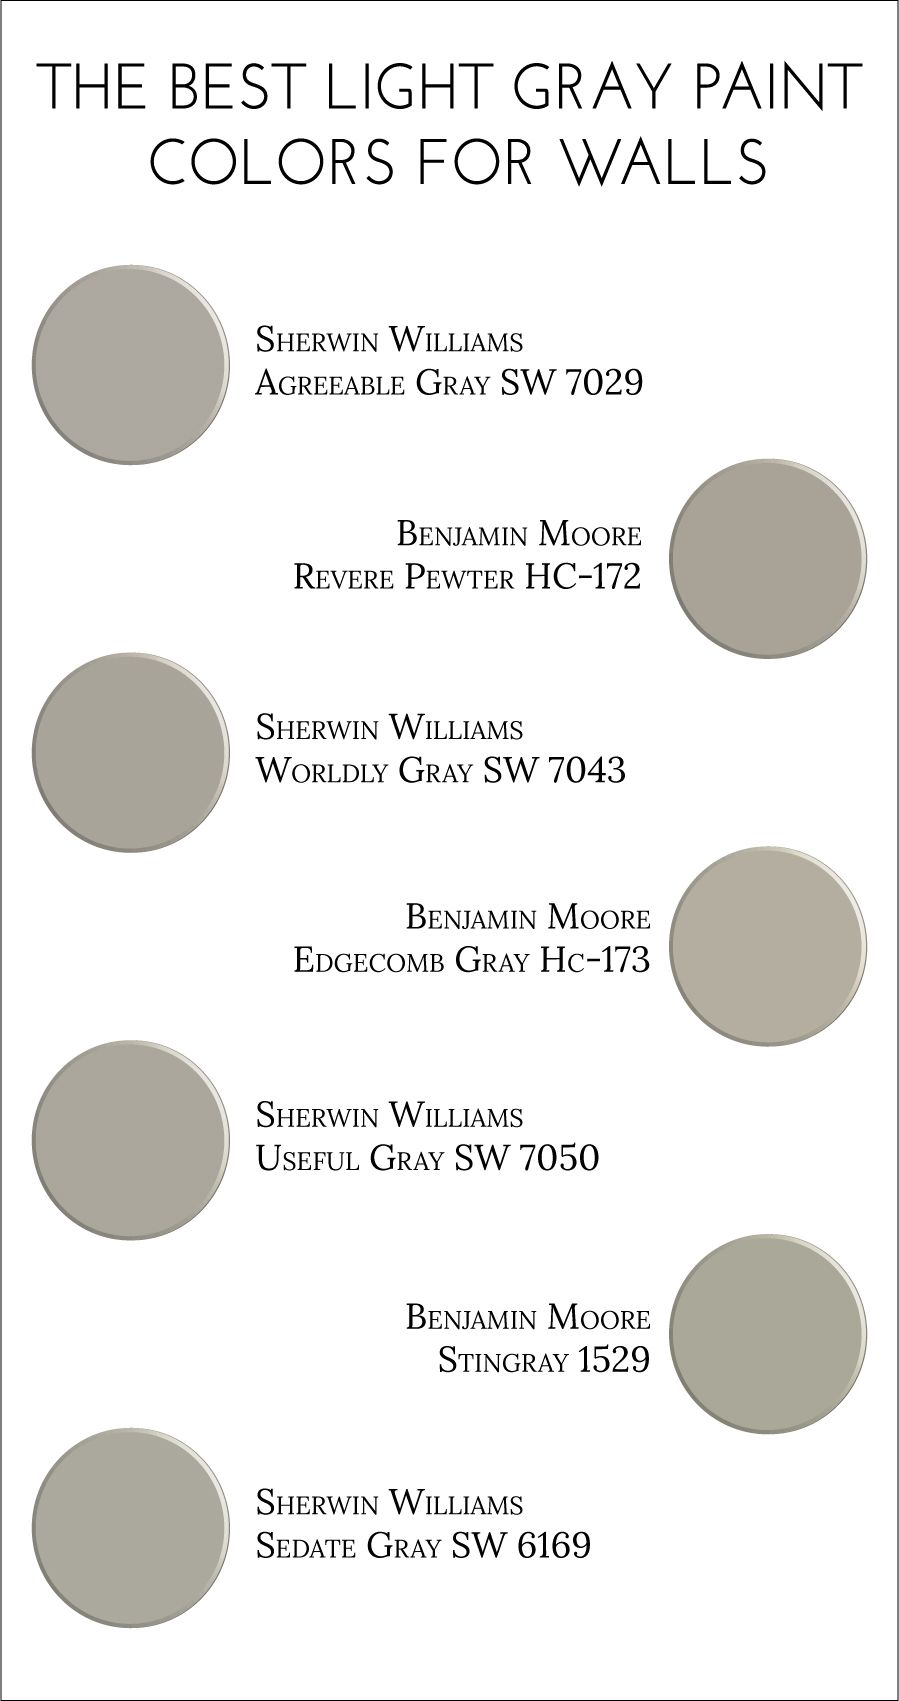 The Best Light Gray Paint Colors For Walls Interior Designer Des Moines Jillian Lare Light Grey Paint Colors Grey Paint Colors Light Gray Paint